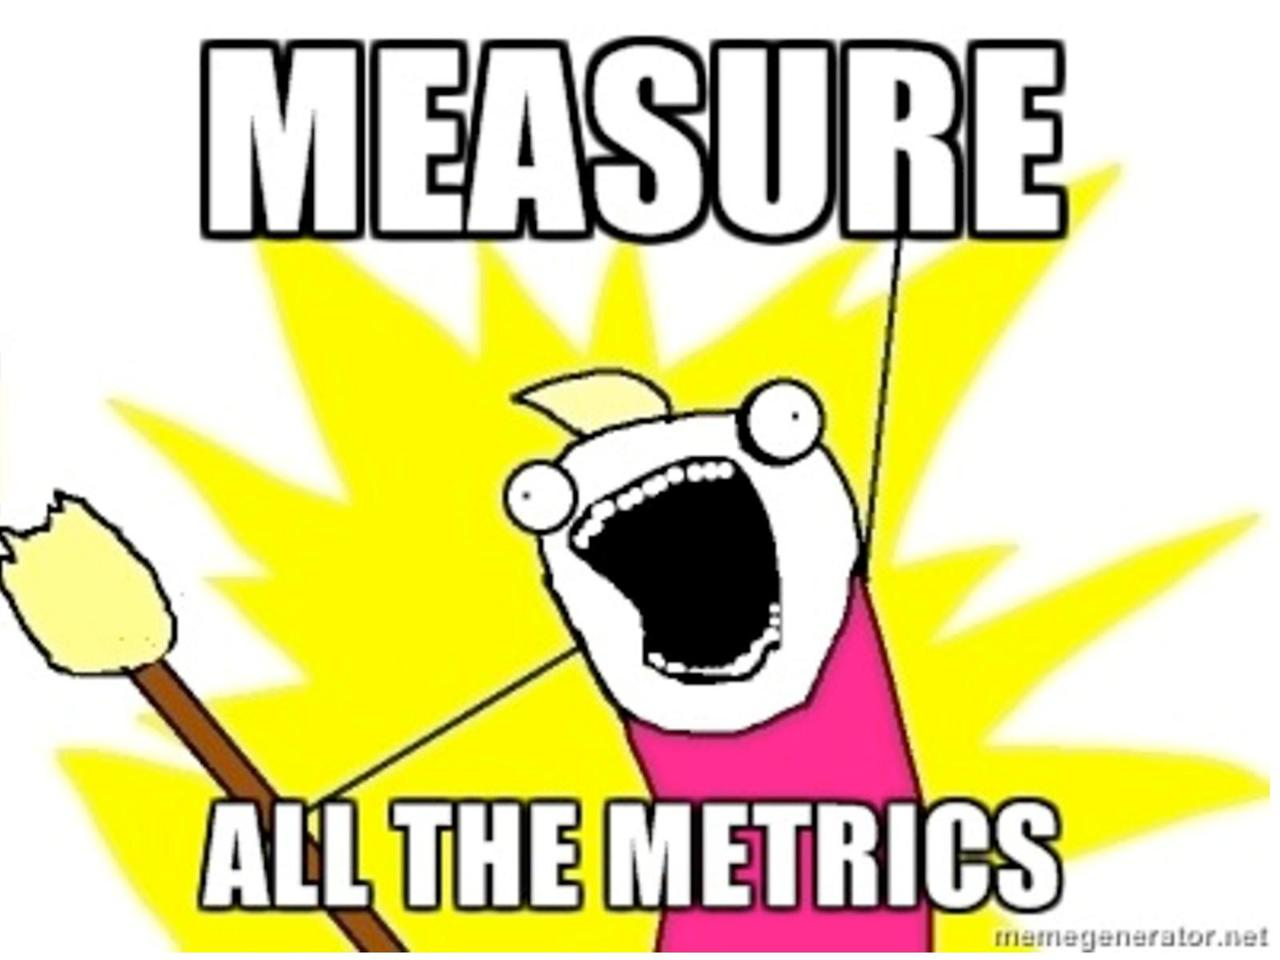 Application Metrics - measure ALL the things!*